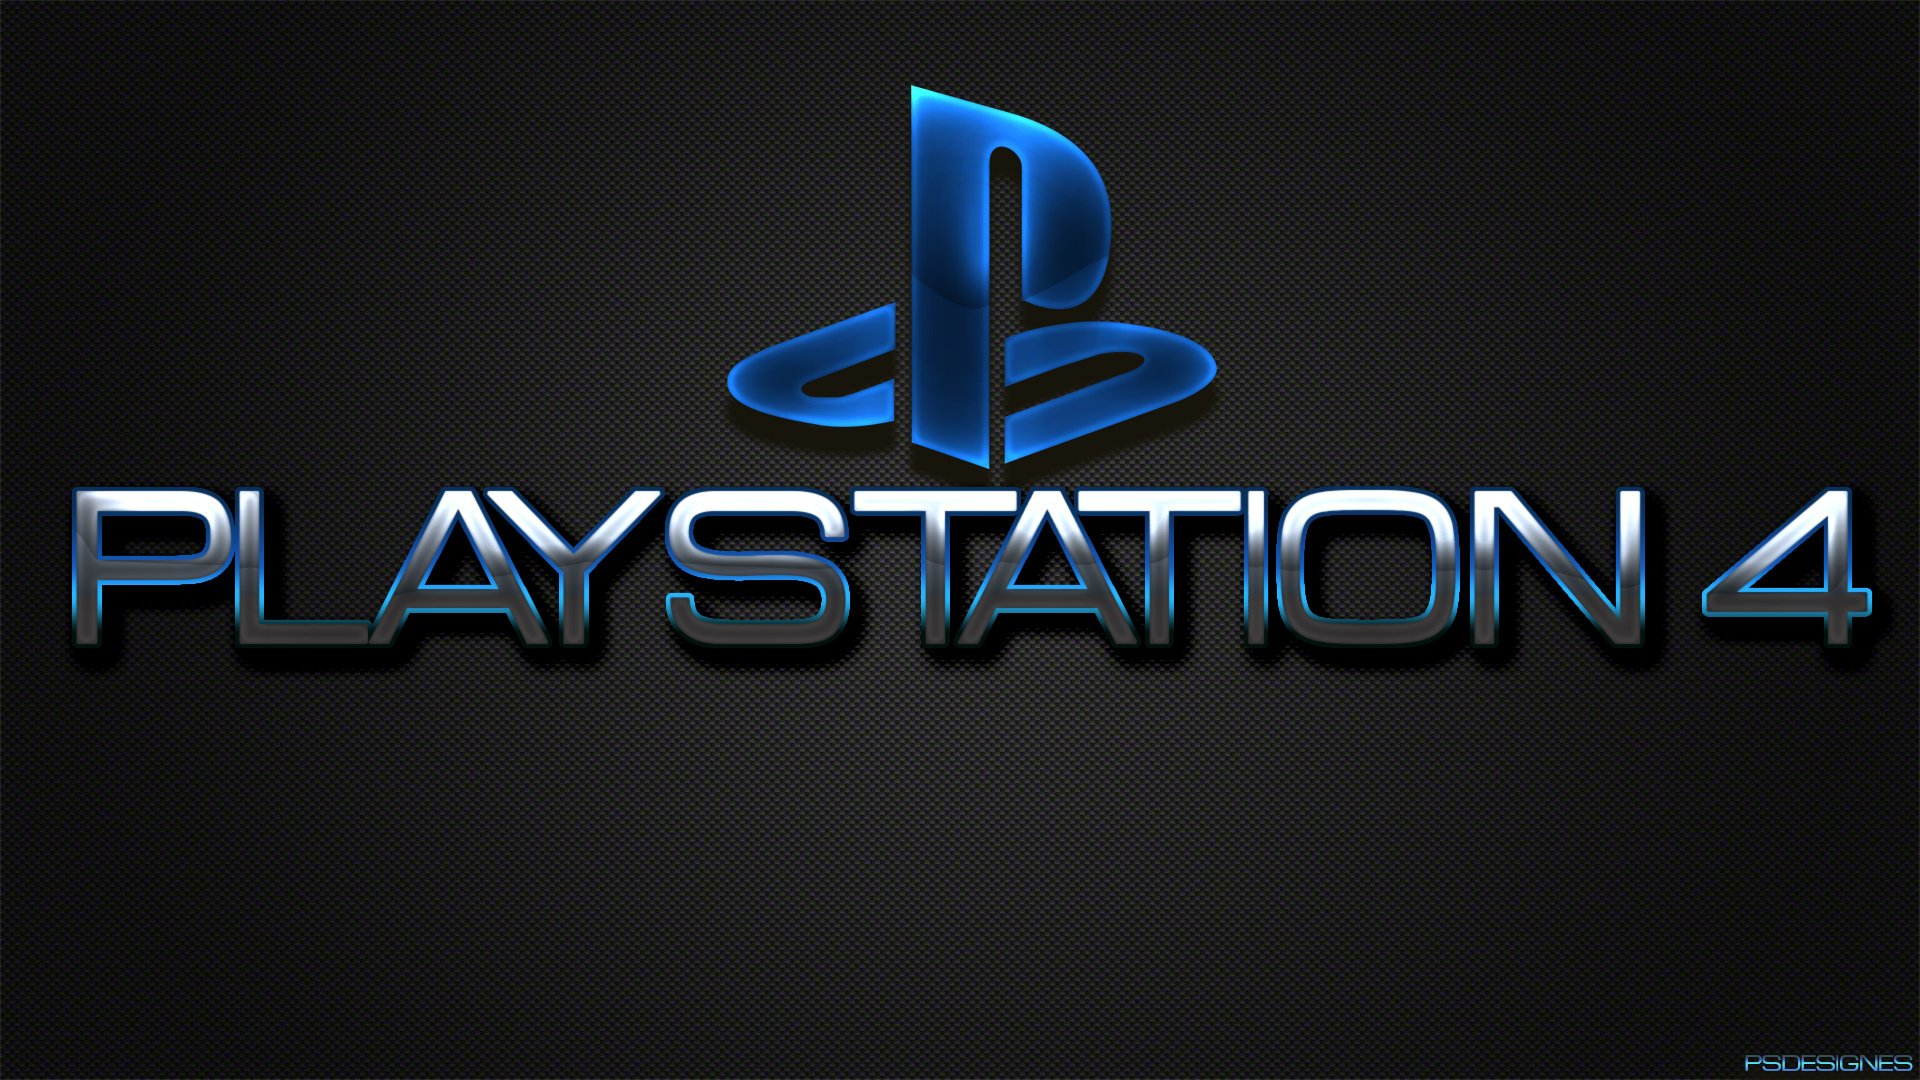 PS4 Playstation videogame system video game sony wallpaper background